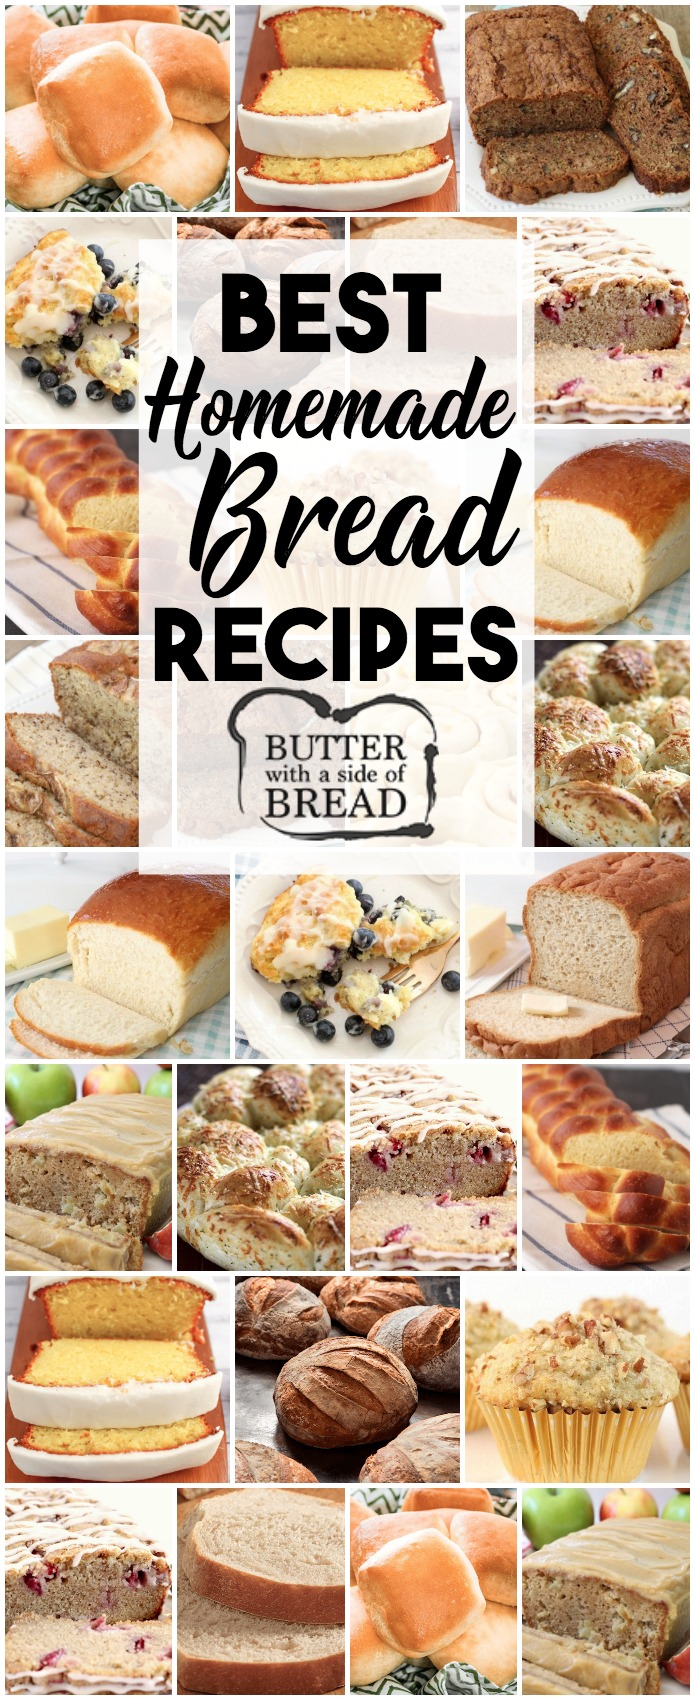 Best Bread Recipes~ from sweet to savory, quick breads to breads with yeast, we love bread! Most popular easy bread recipes we can't get enough of in our home. If you enjoy making bread, you've got to check out these incredible bread recipes from Butter With A side of Bread #bread #recipe #yeast #quickbread #rolls #muffins #breads #food